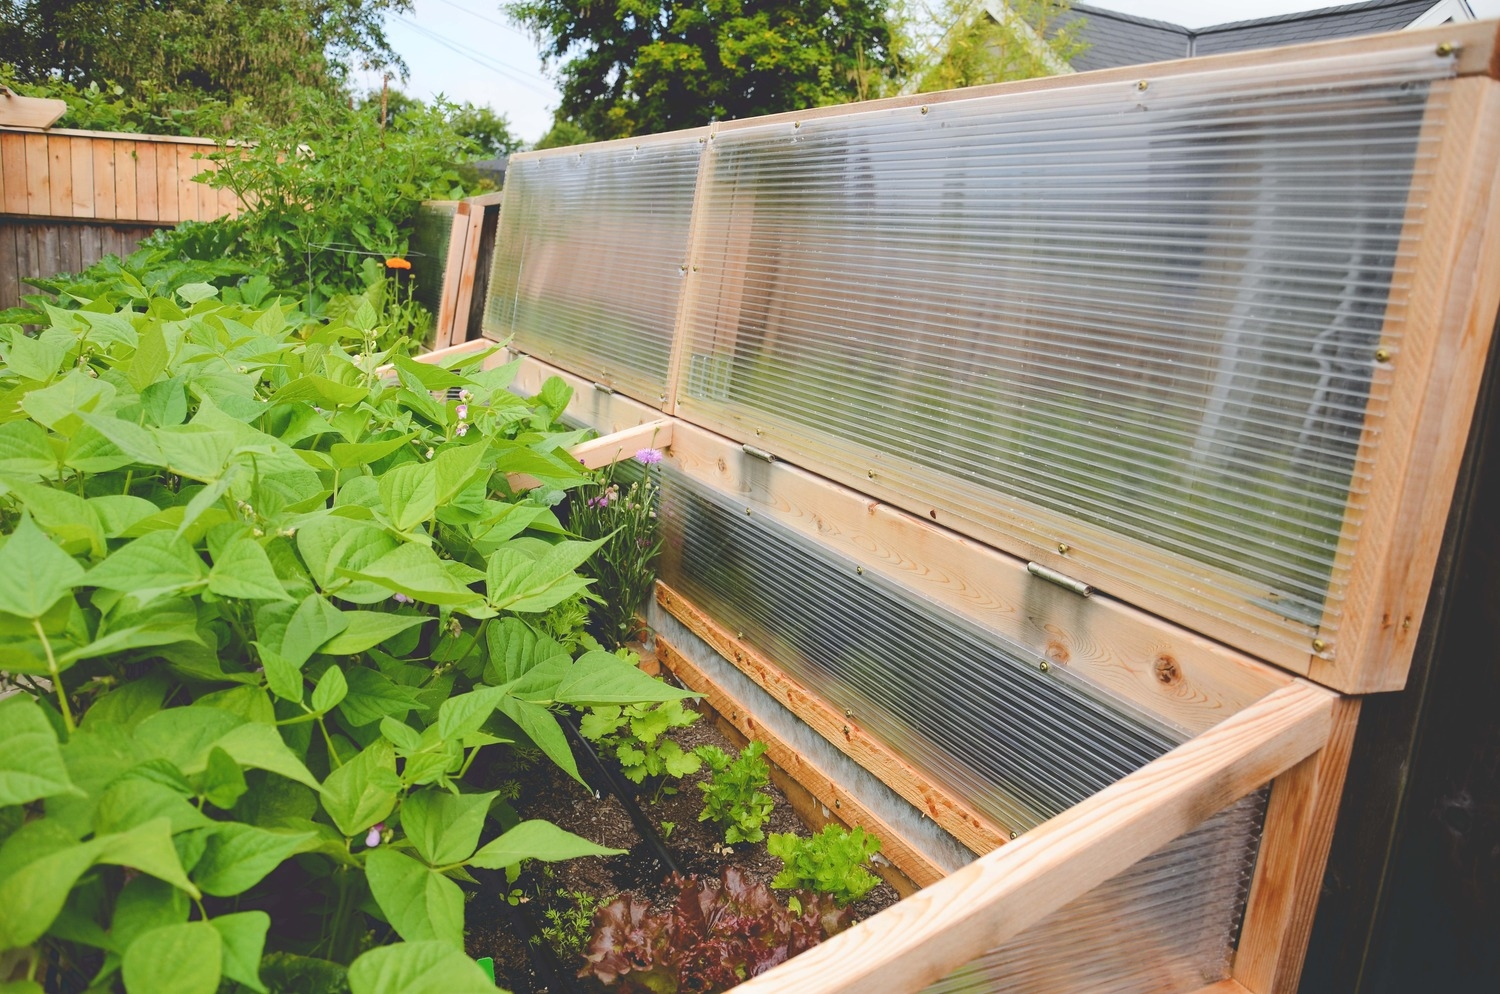 Extra vegetable garden raised beds with cold frames by Seattle Urban Farm Co.